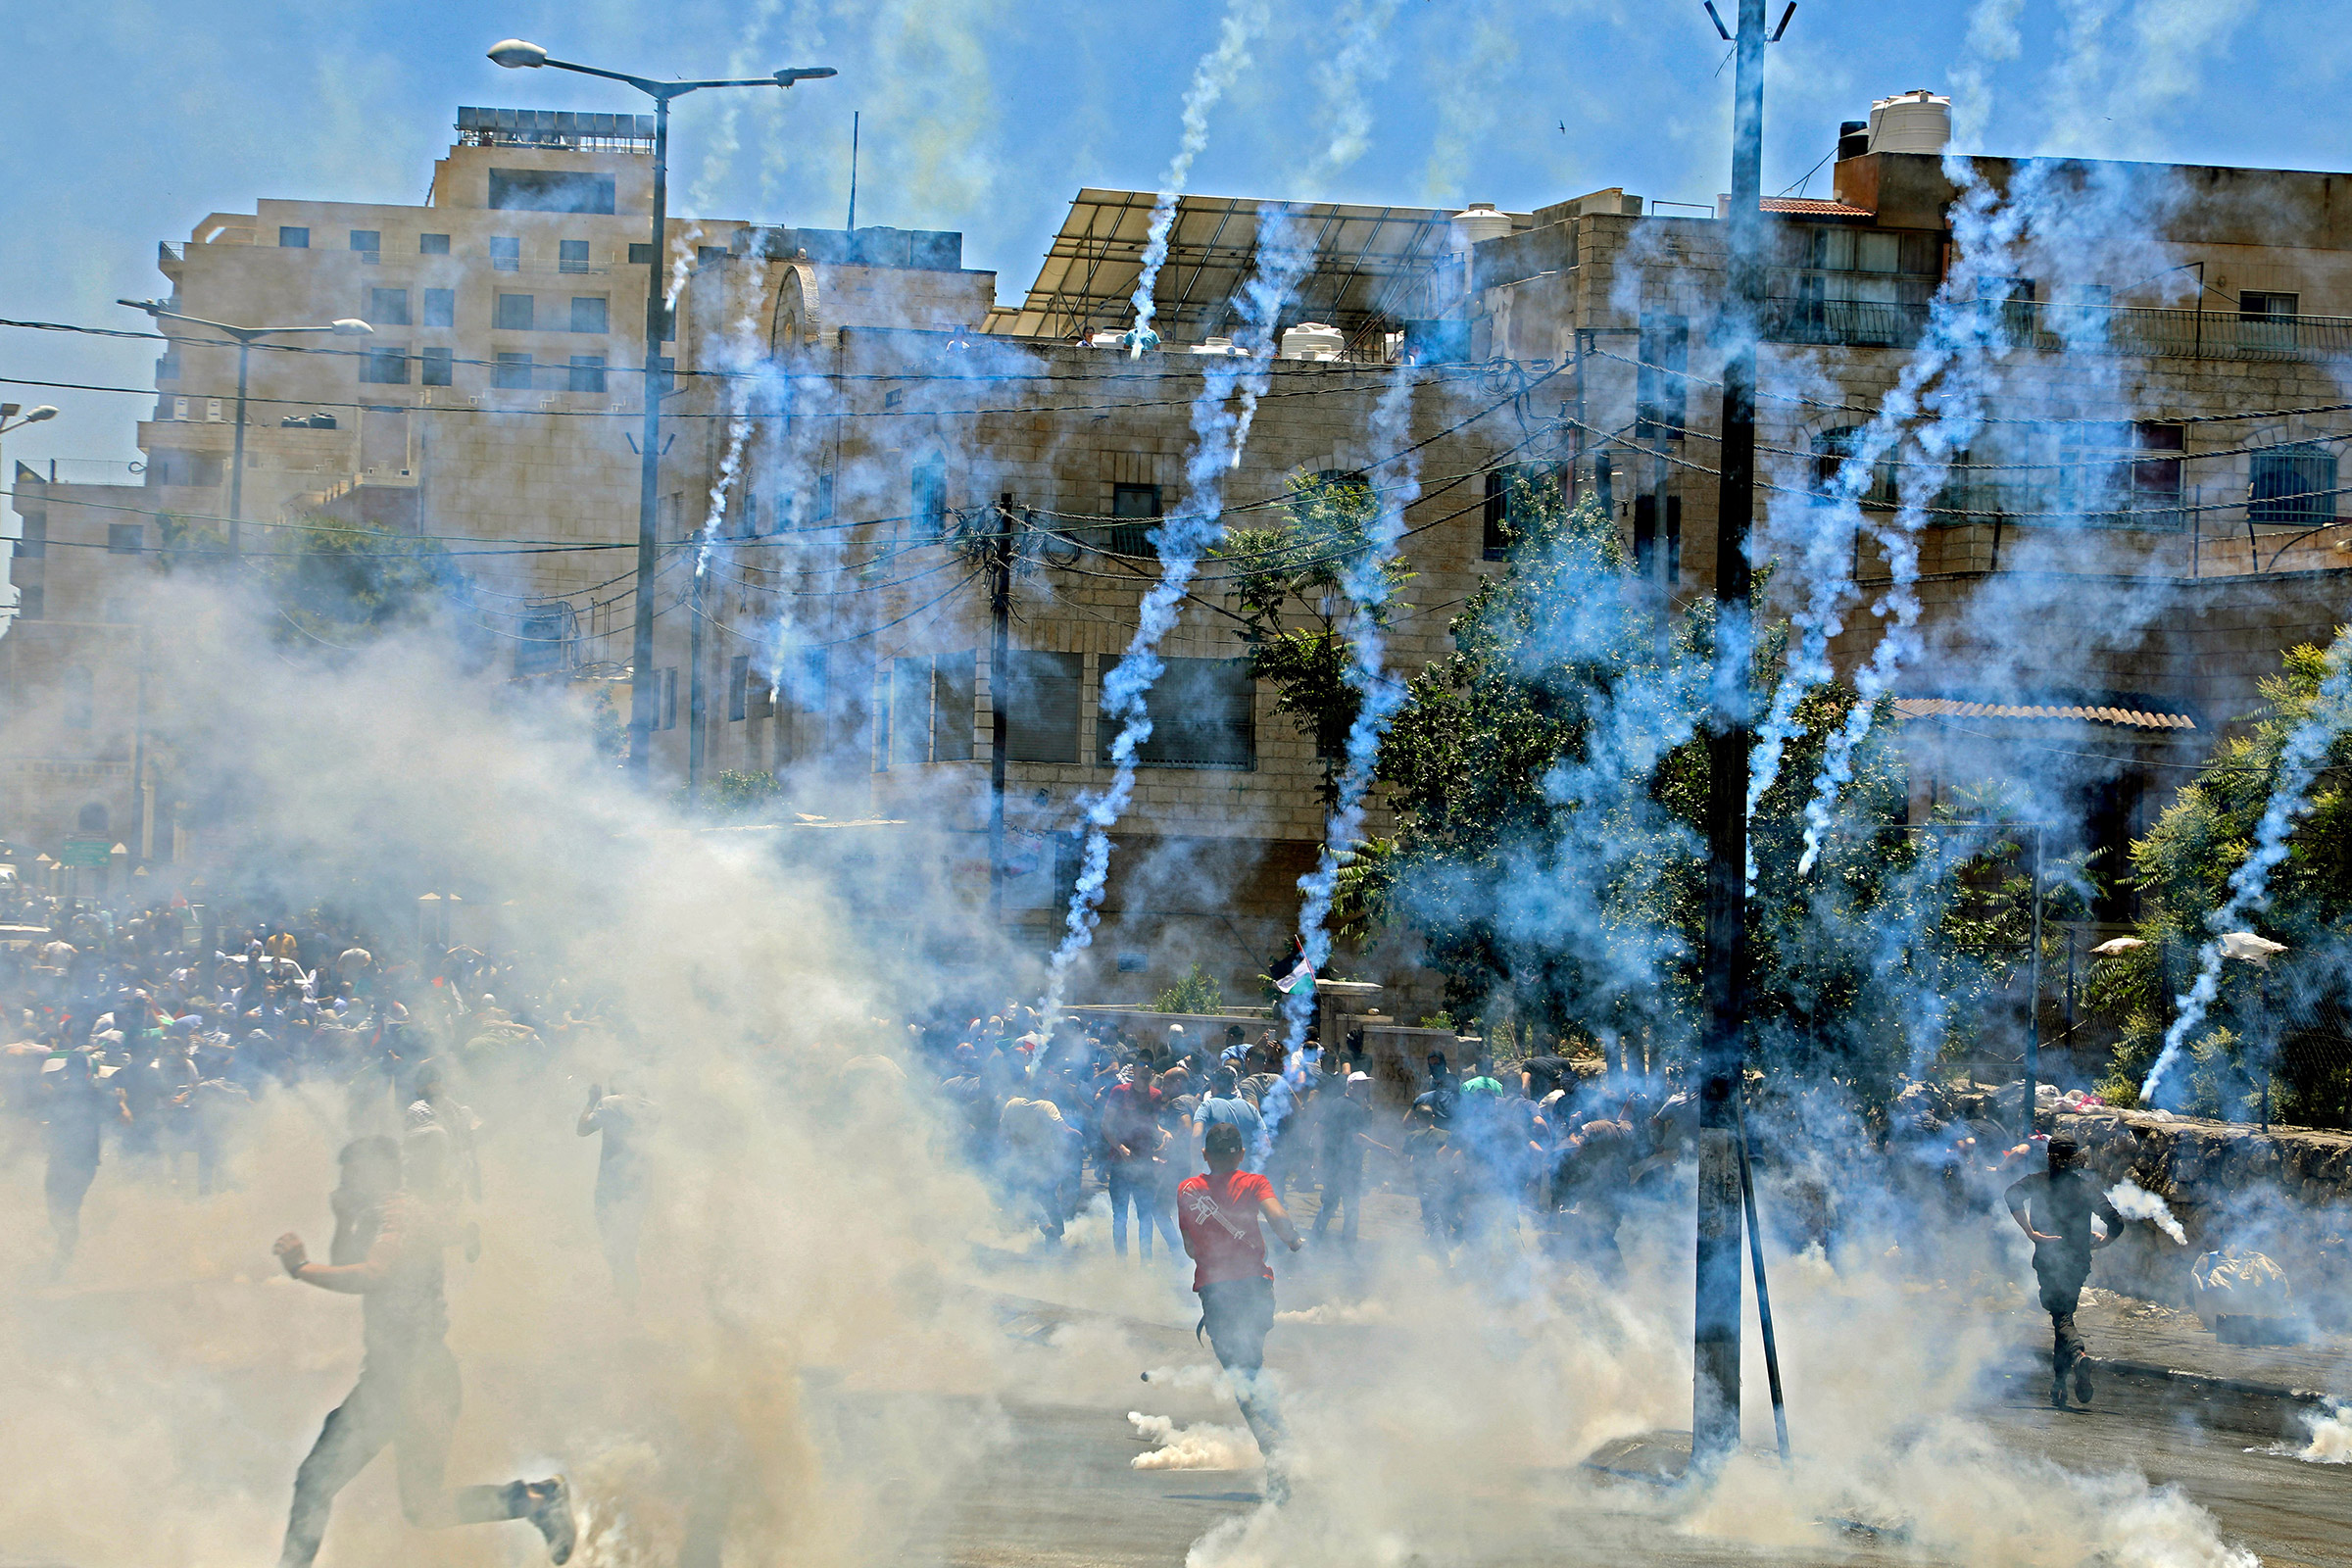 Israeli troops fire tear gas towards demonstrators during a protest against Israeli occupation in the West Bank on May 18.